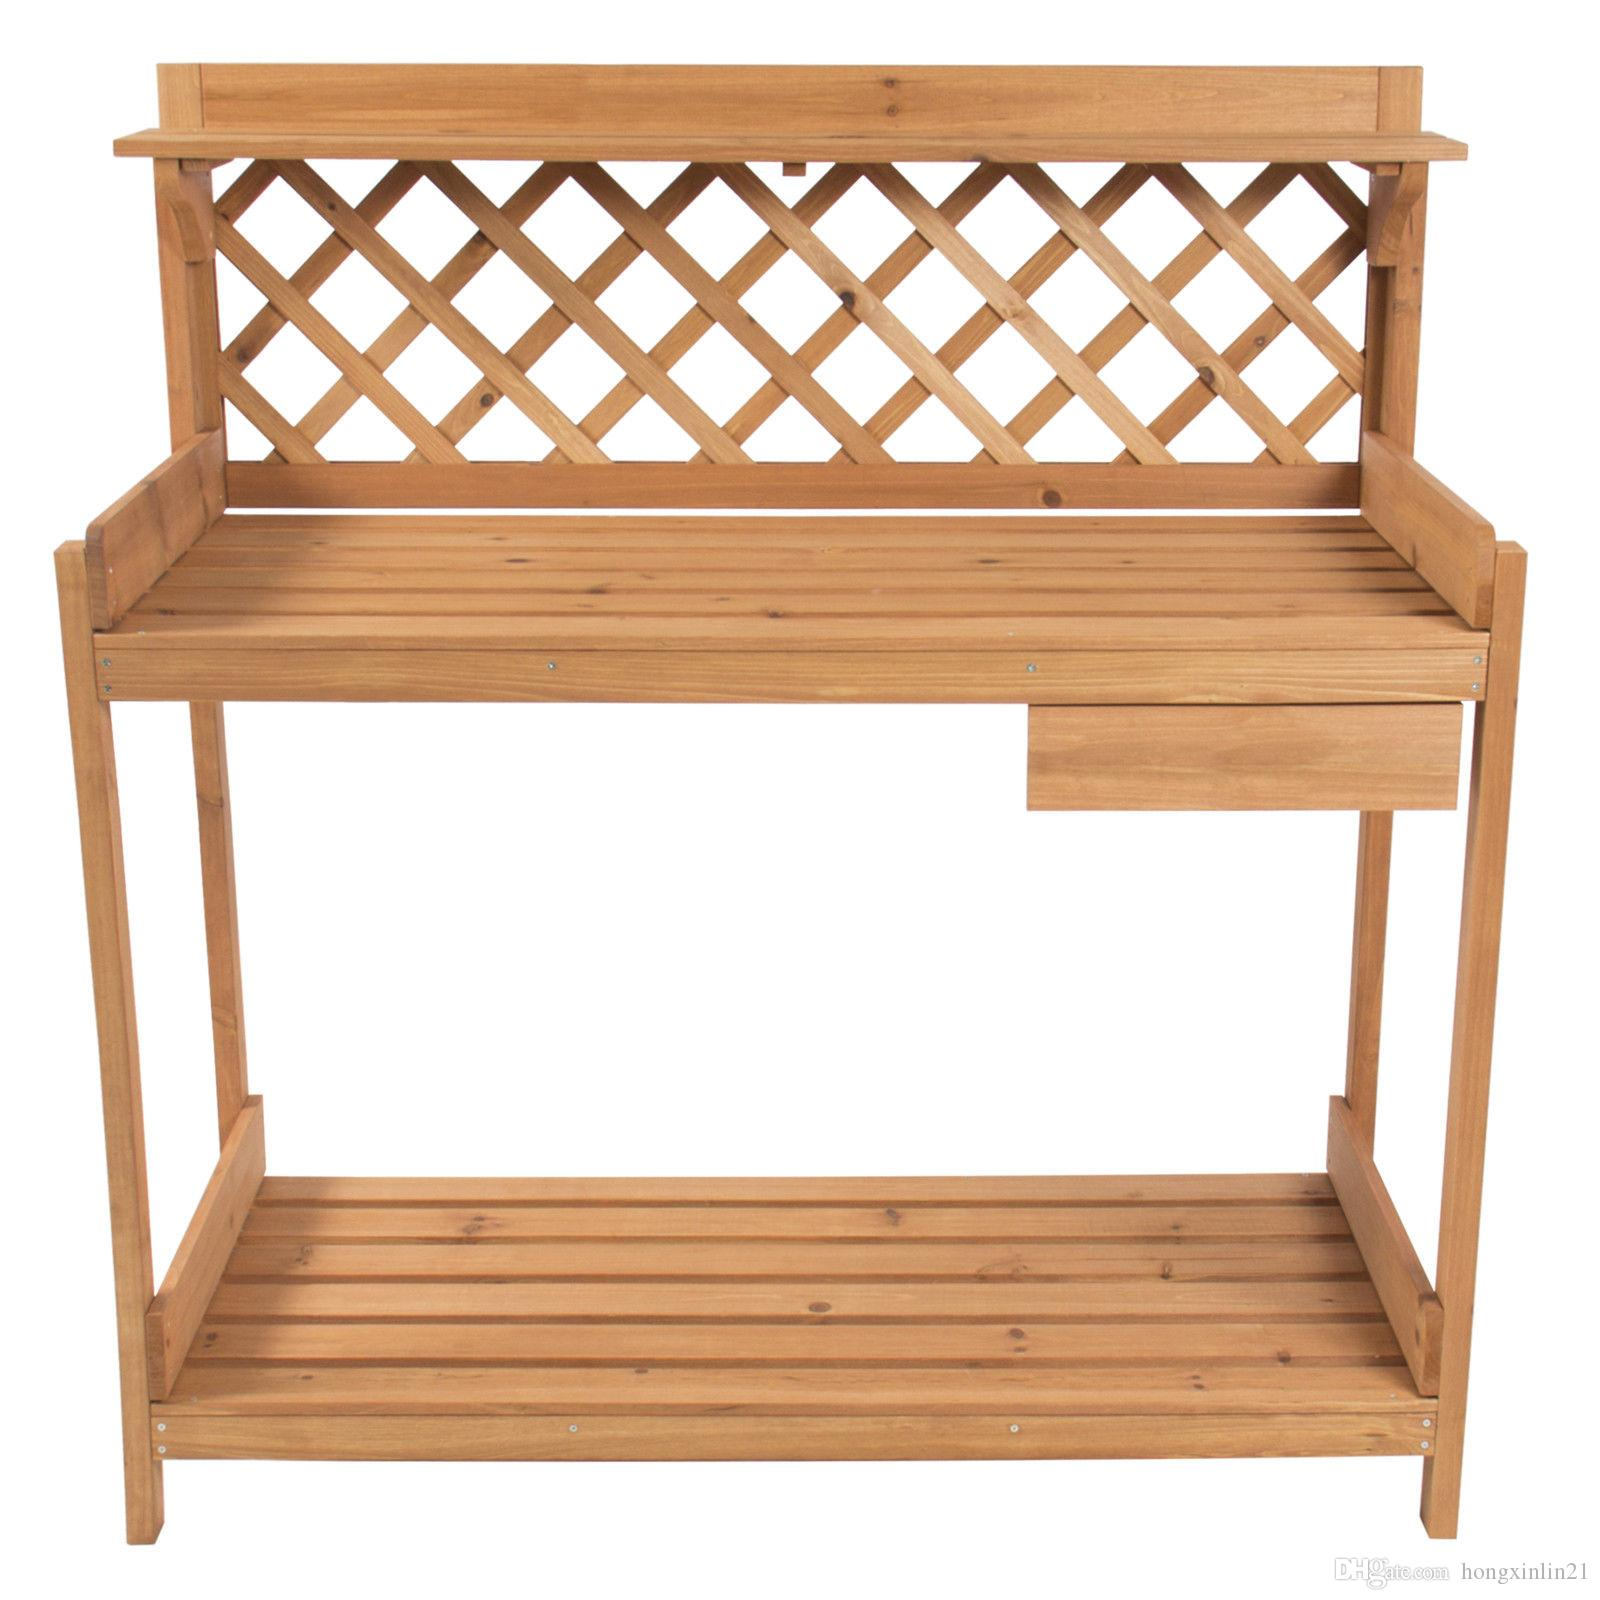 best quality potting bench outdoor garden work bench station planting solid wood construction at cheap price online other garden supplies dhgatecom - Garden Work Bench